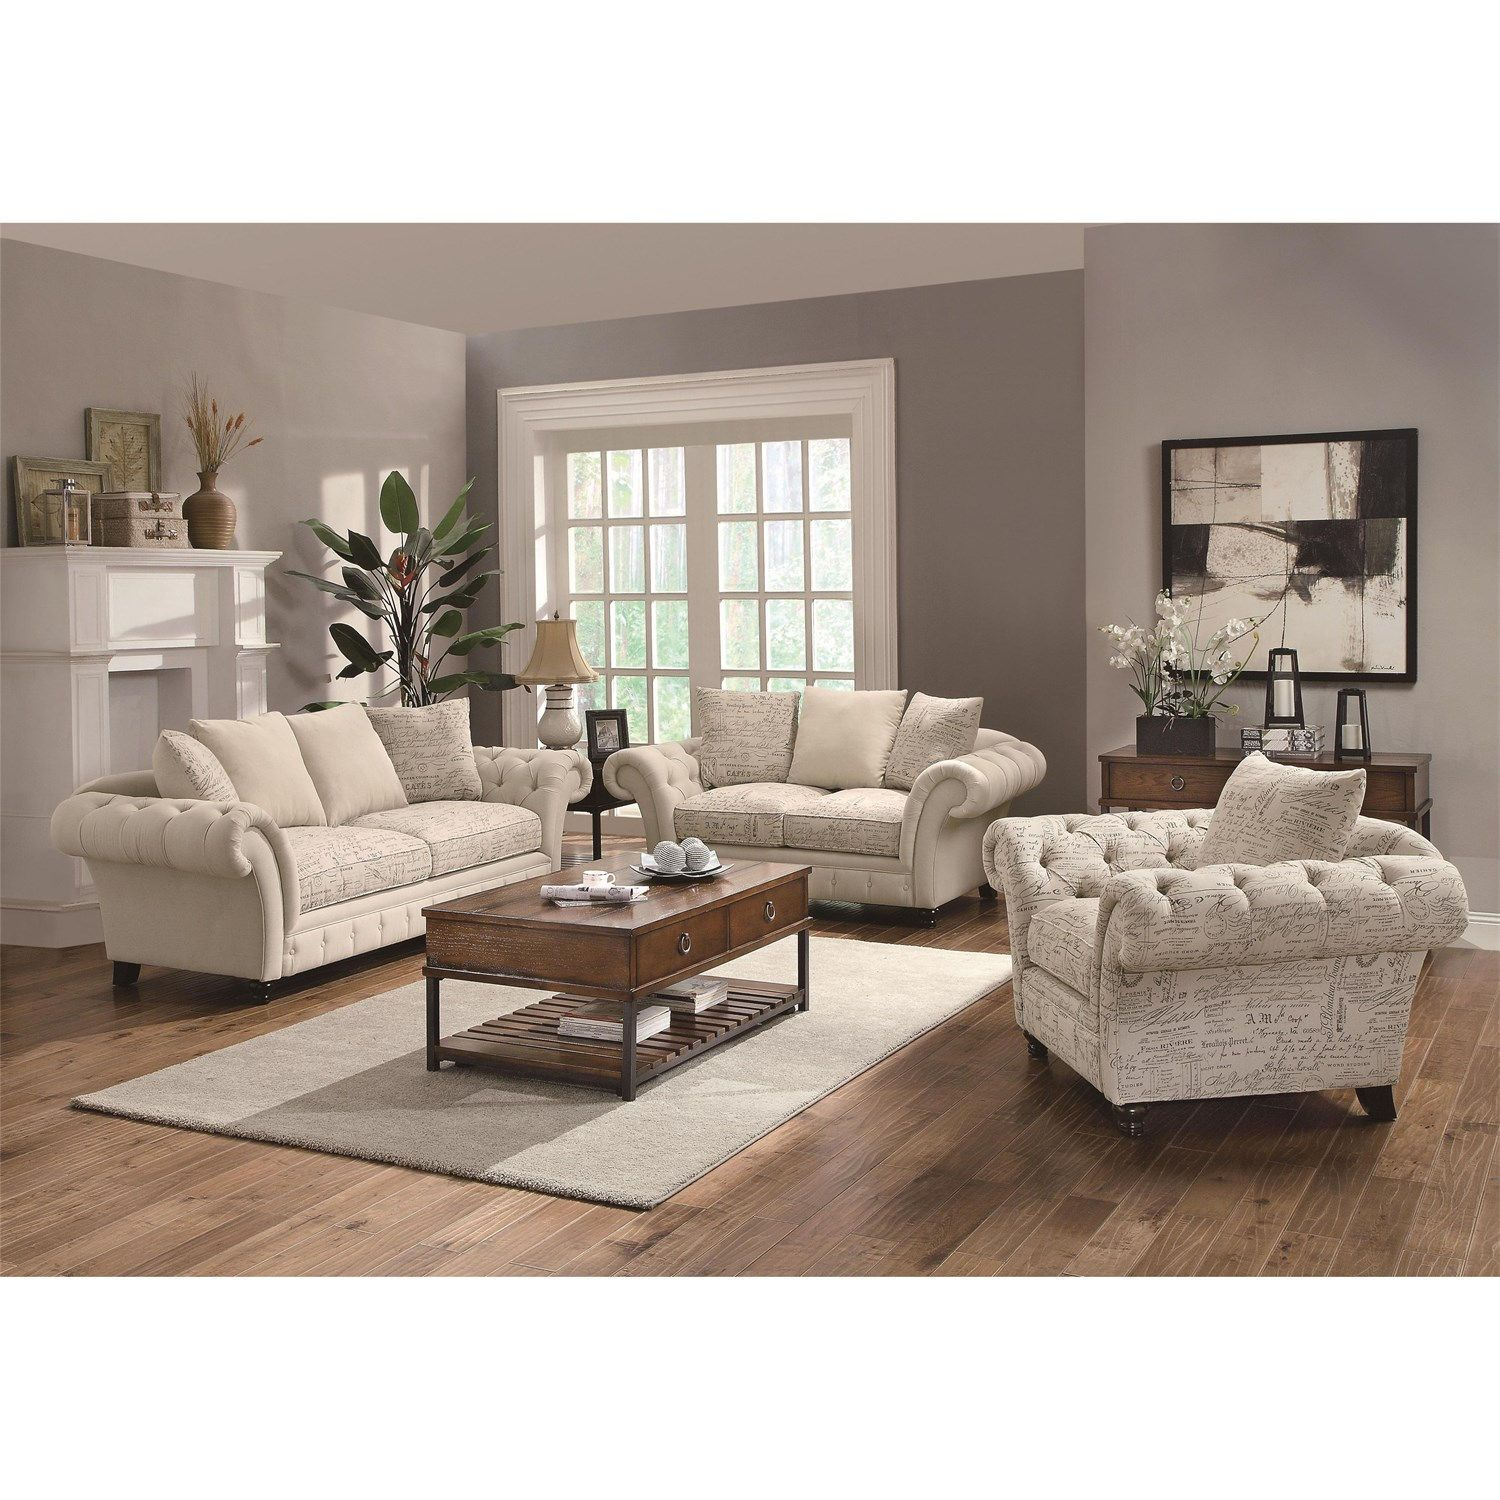 40++ French style living room furniture set ideas